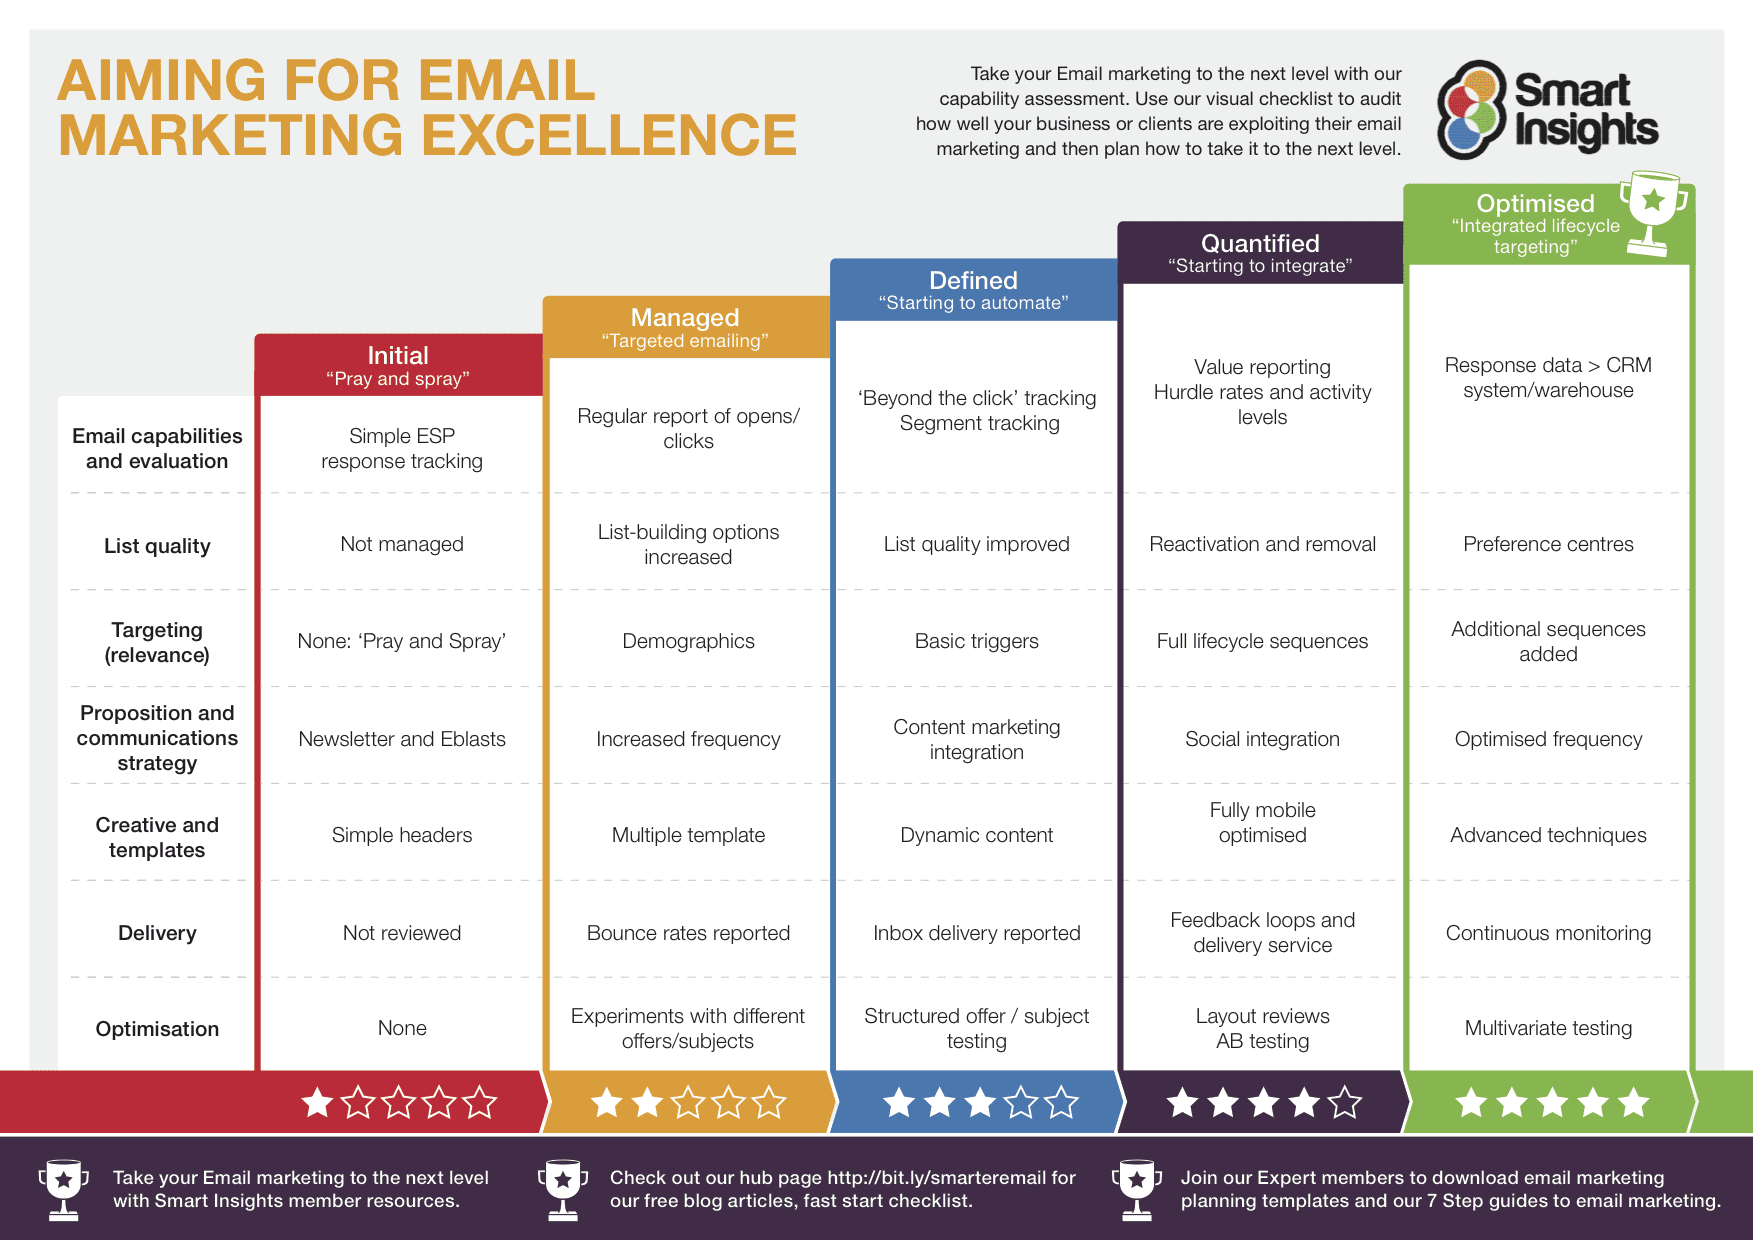 publicity plan template - 24 email marketing tips to improve ctr smart insights